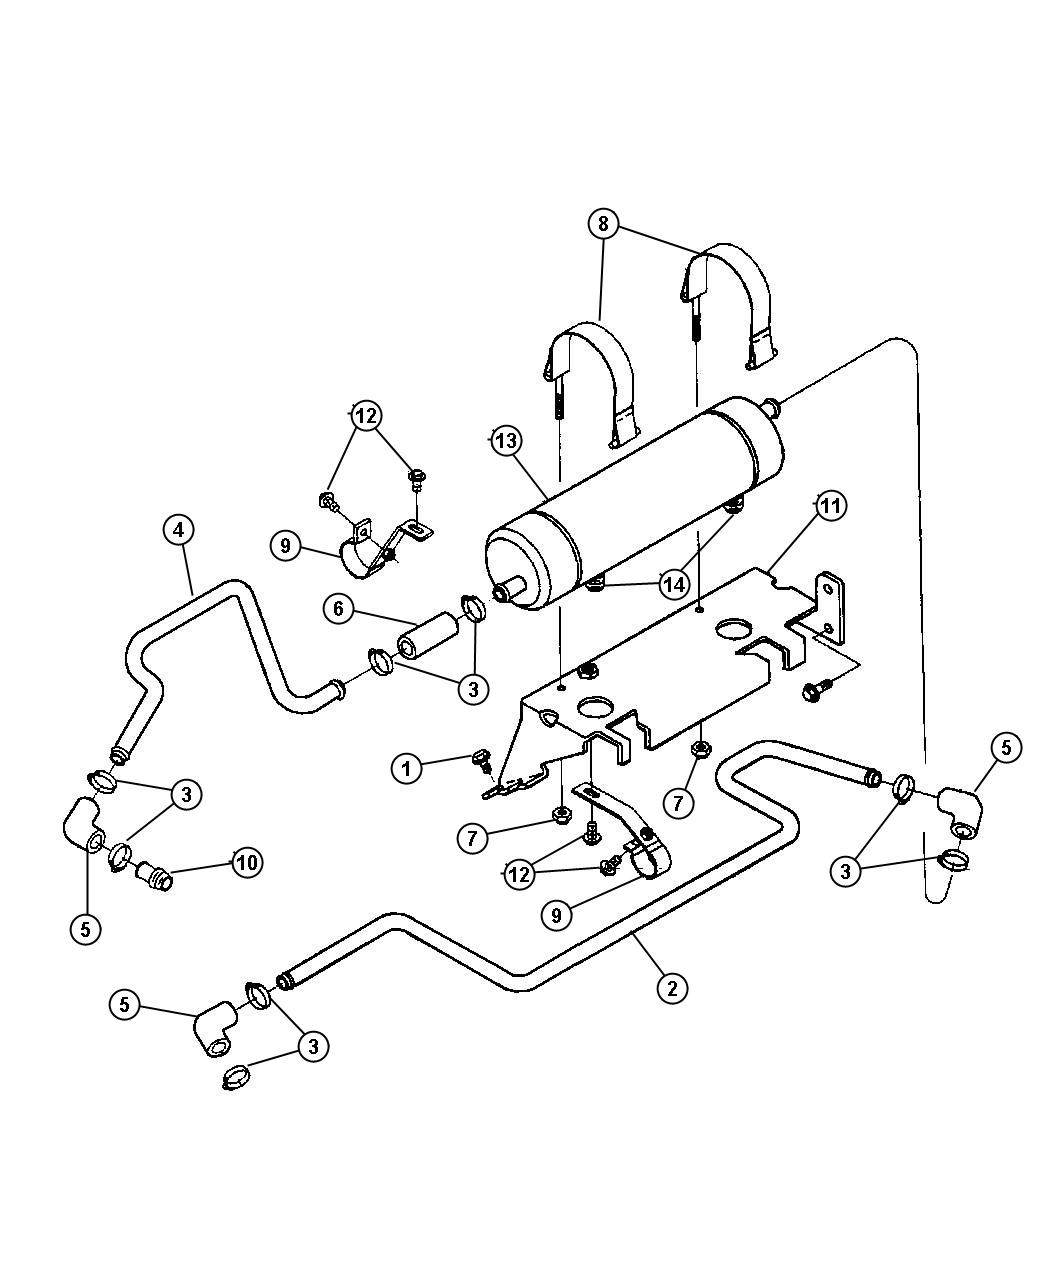 Tranny Lines Gasket Filter Question